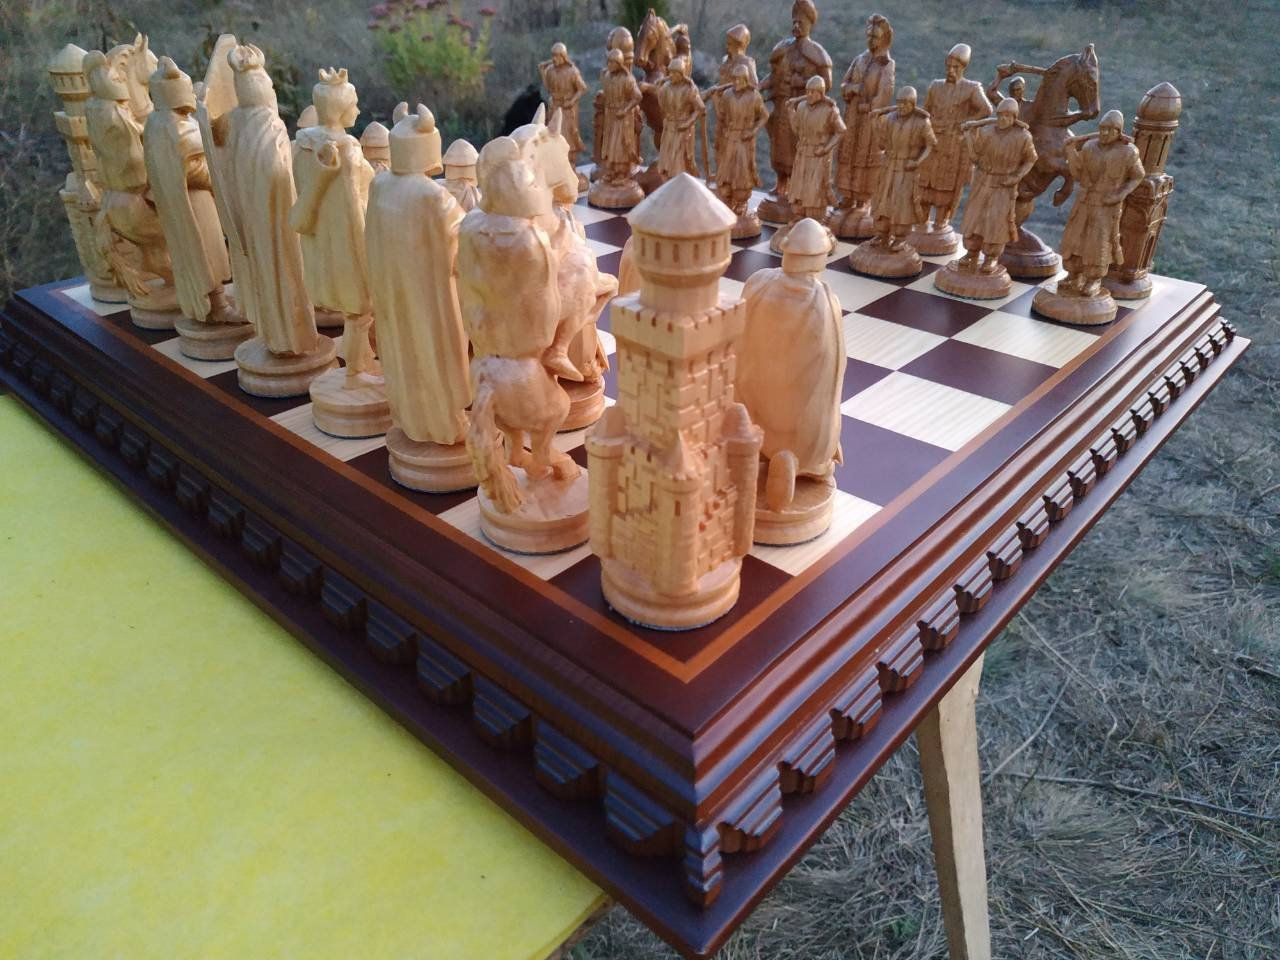 Wooden Chess Set Board Pieces Exclusive Handmade Big Large Etsy In 2020 Wooden Chess Set Chess Set Wooden Chess